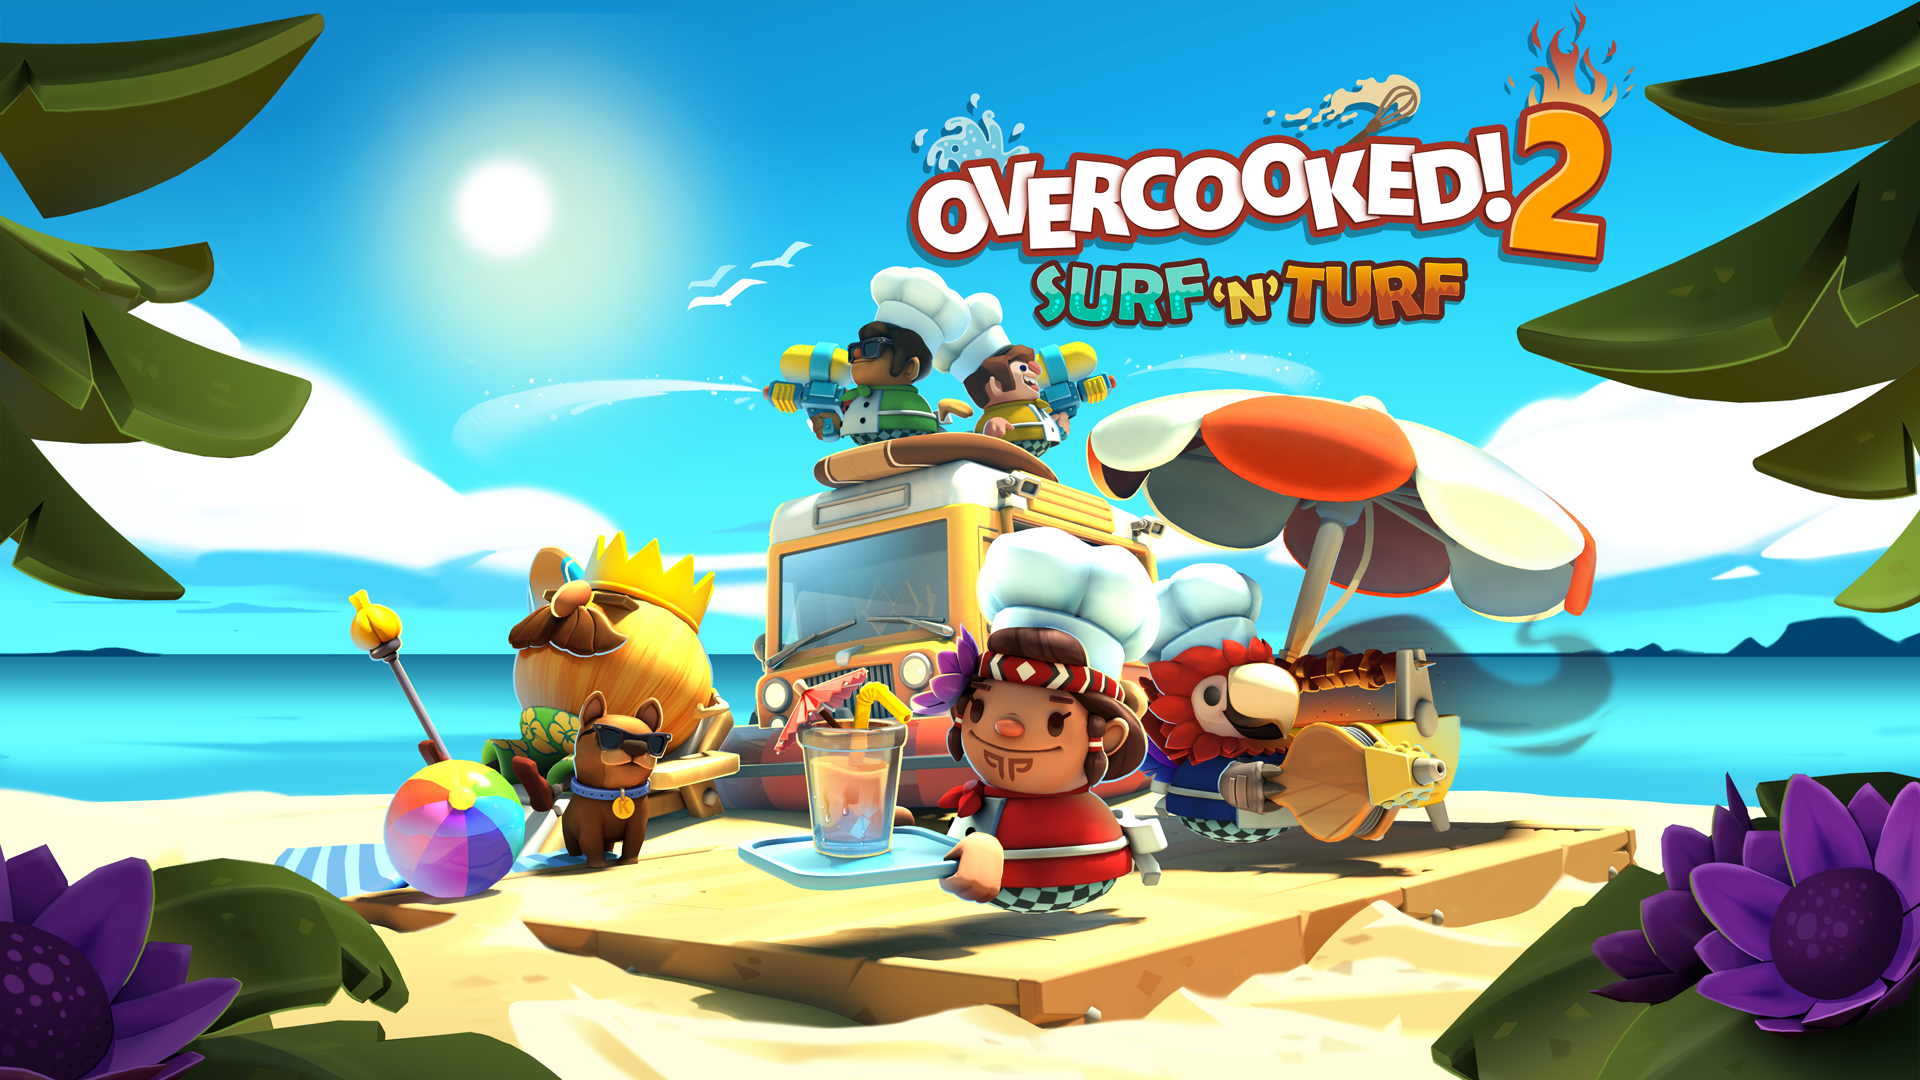 Overcooked! 2 – Surf 'n' Turf DLC Available Now!